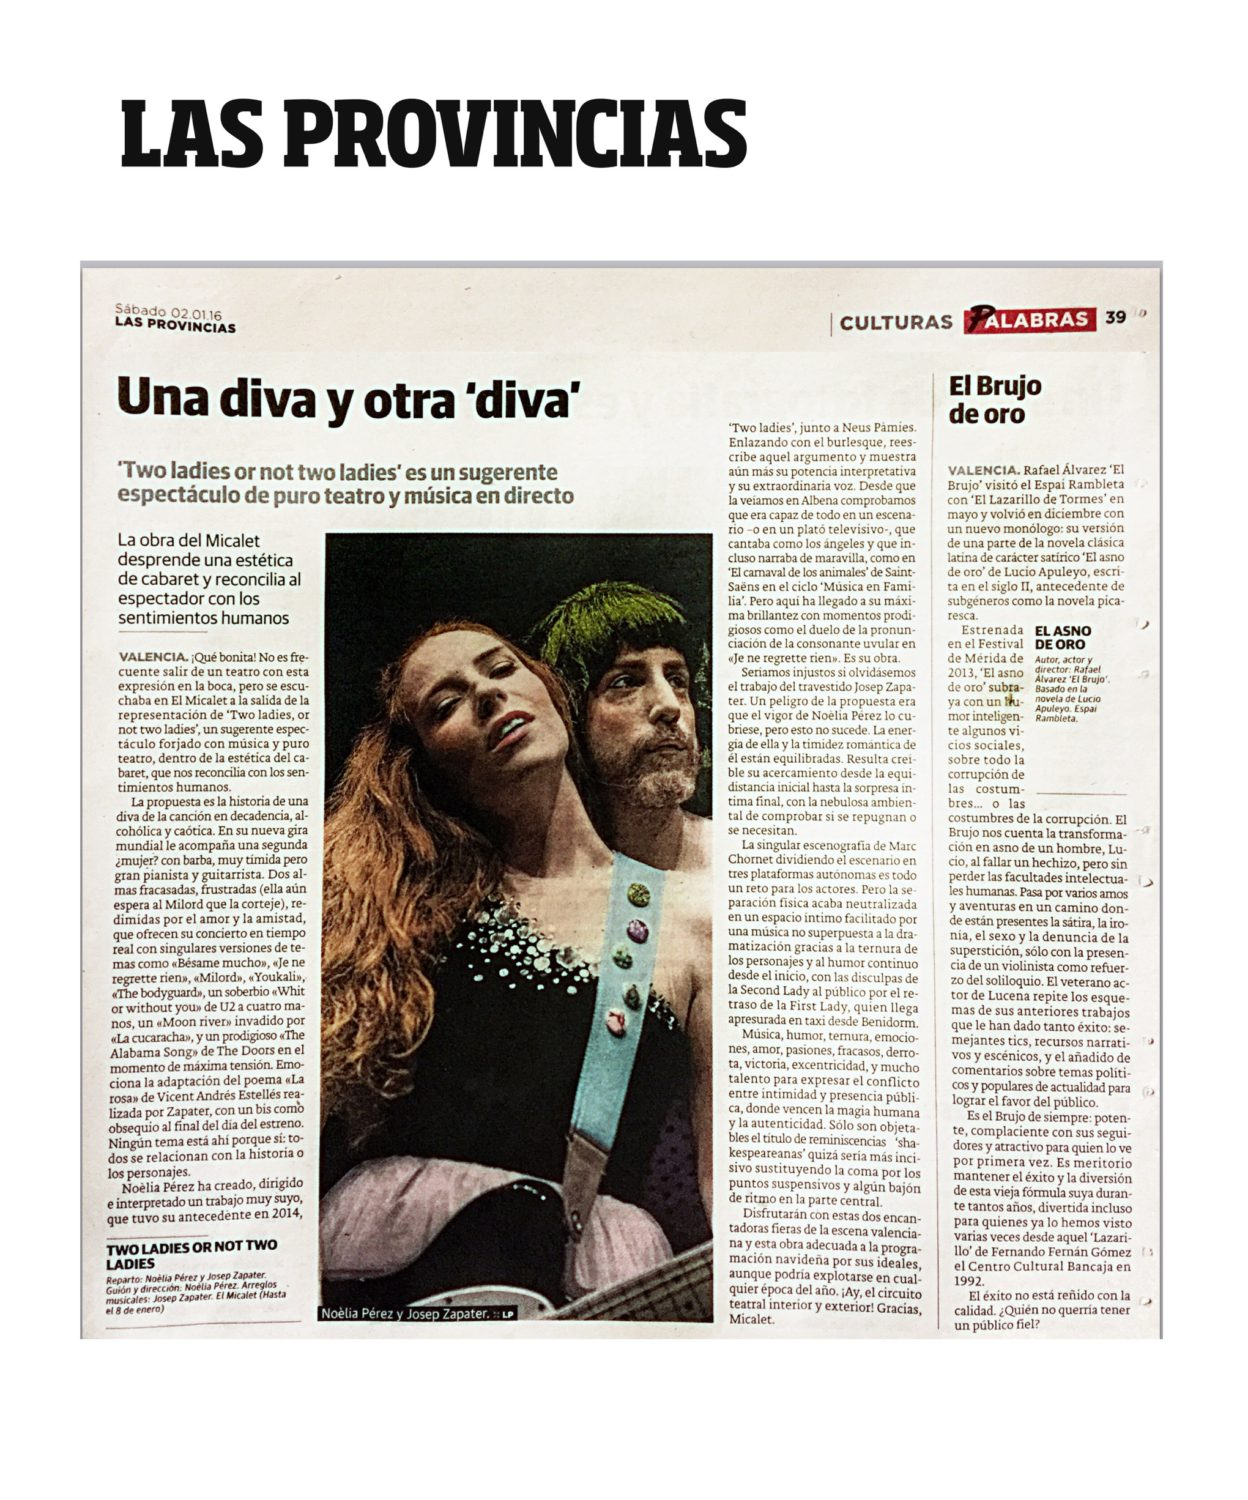 Two Ladies or not Two Ladies - Crítica - Las Provincias